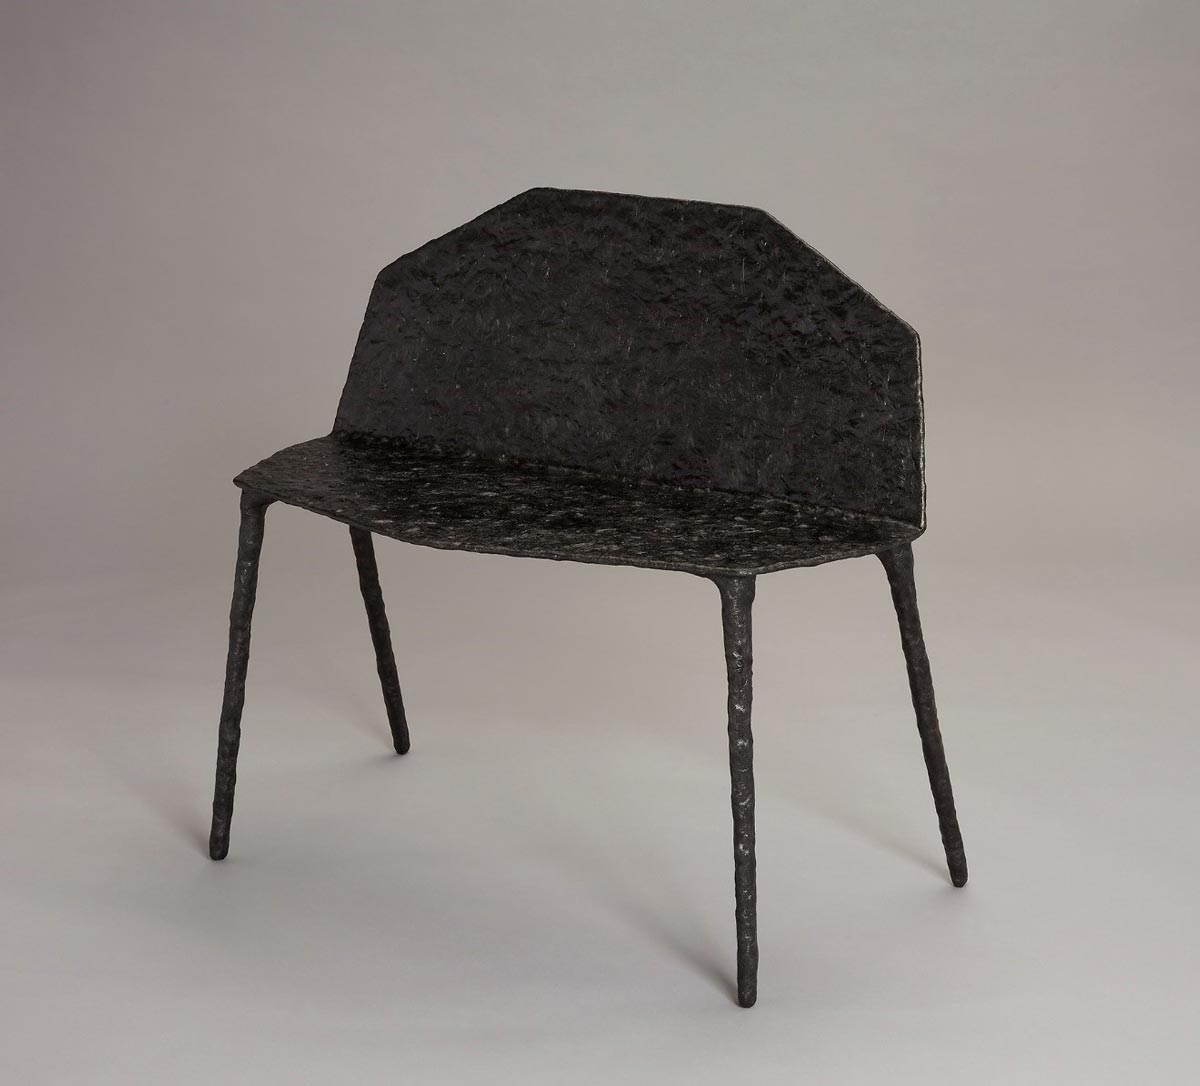 Jonathan Muecke (American, b. 1983), Bench, 2011. Carbon fiber and epoxy resin. Milwaukee Art Museum, Purchase, with funds from the Stern Fund, M2017.58. Photo by John R. Glembin.